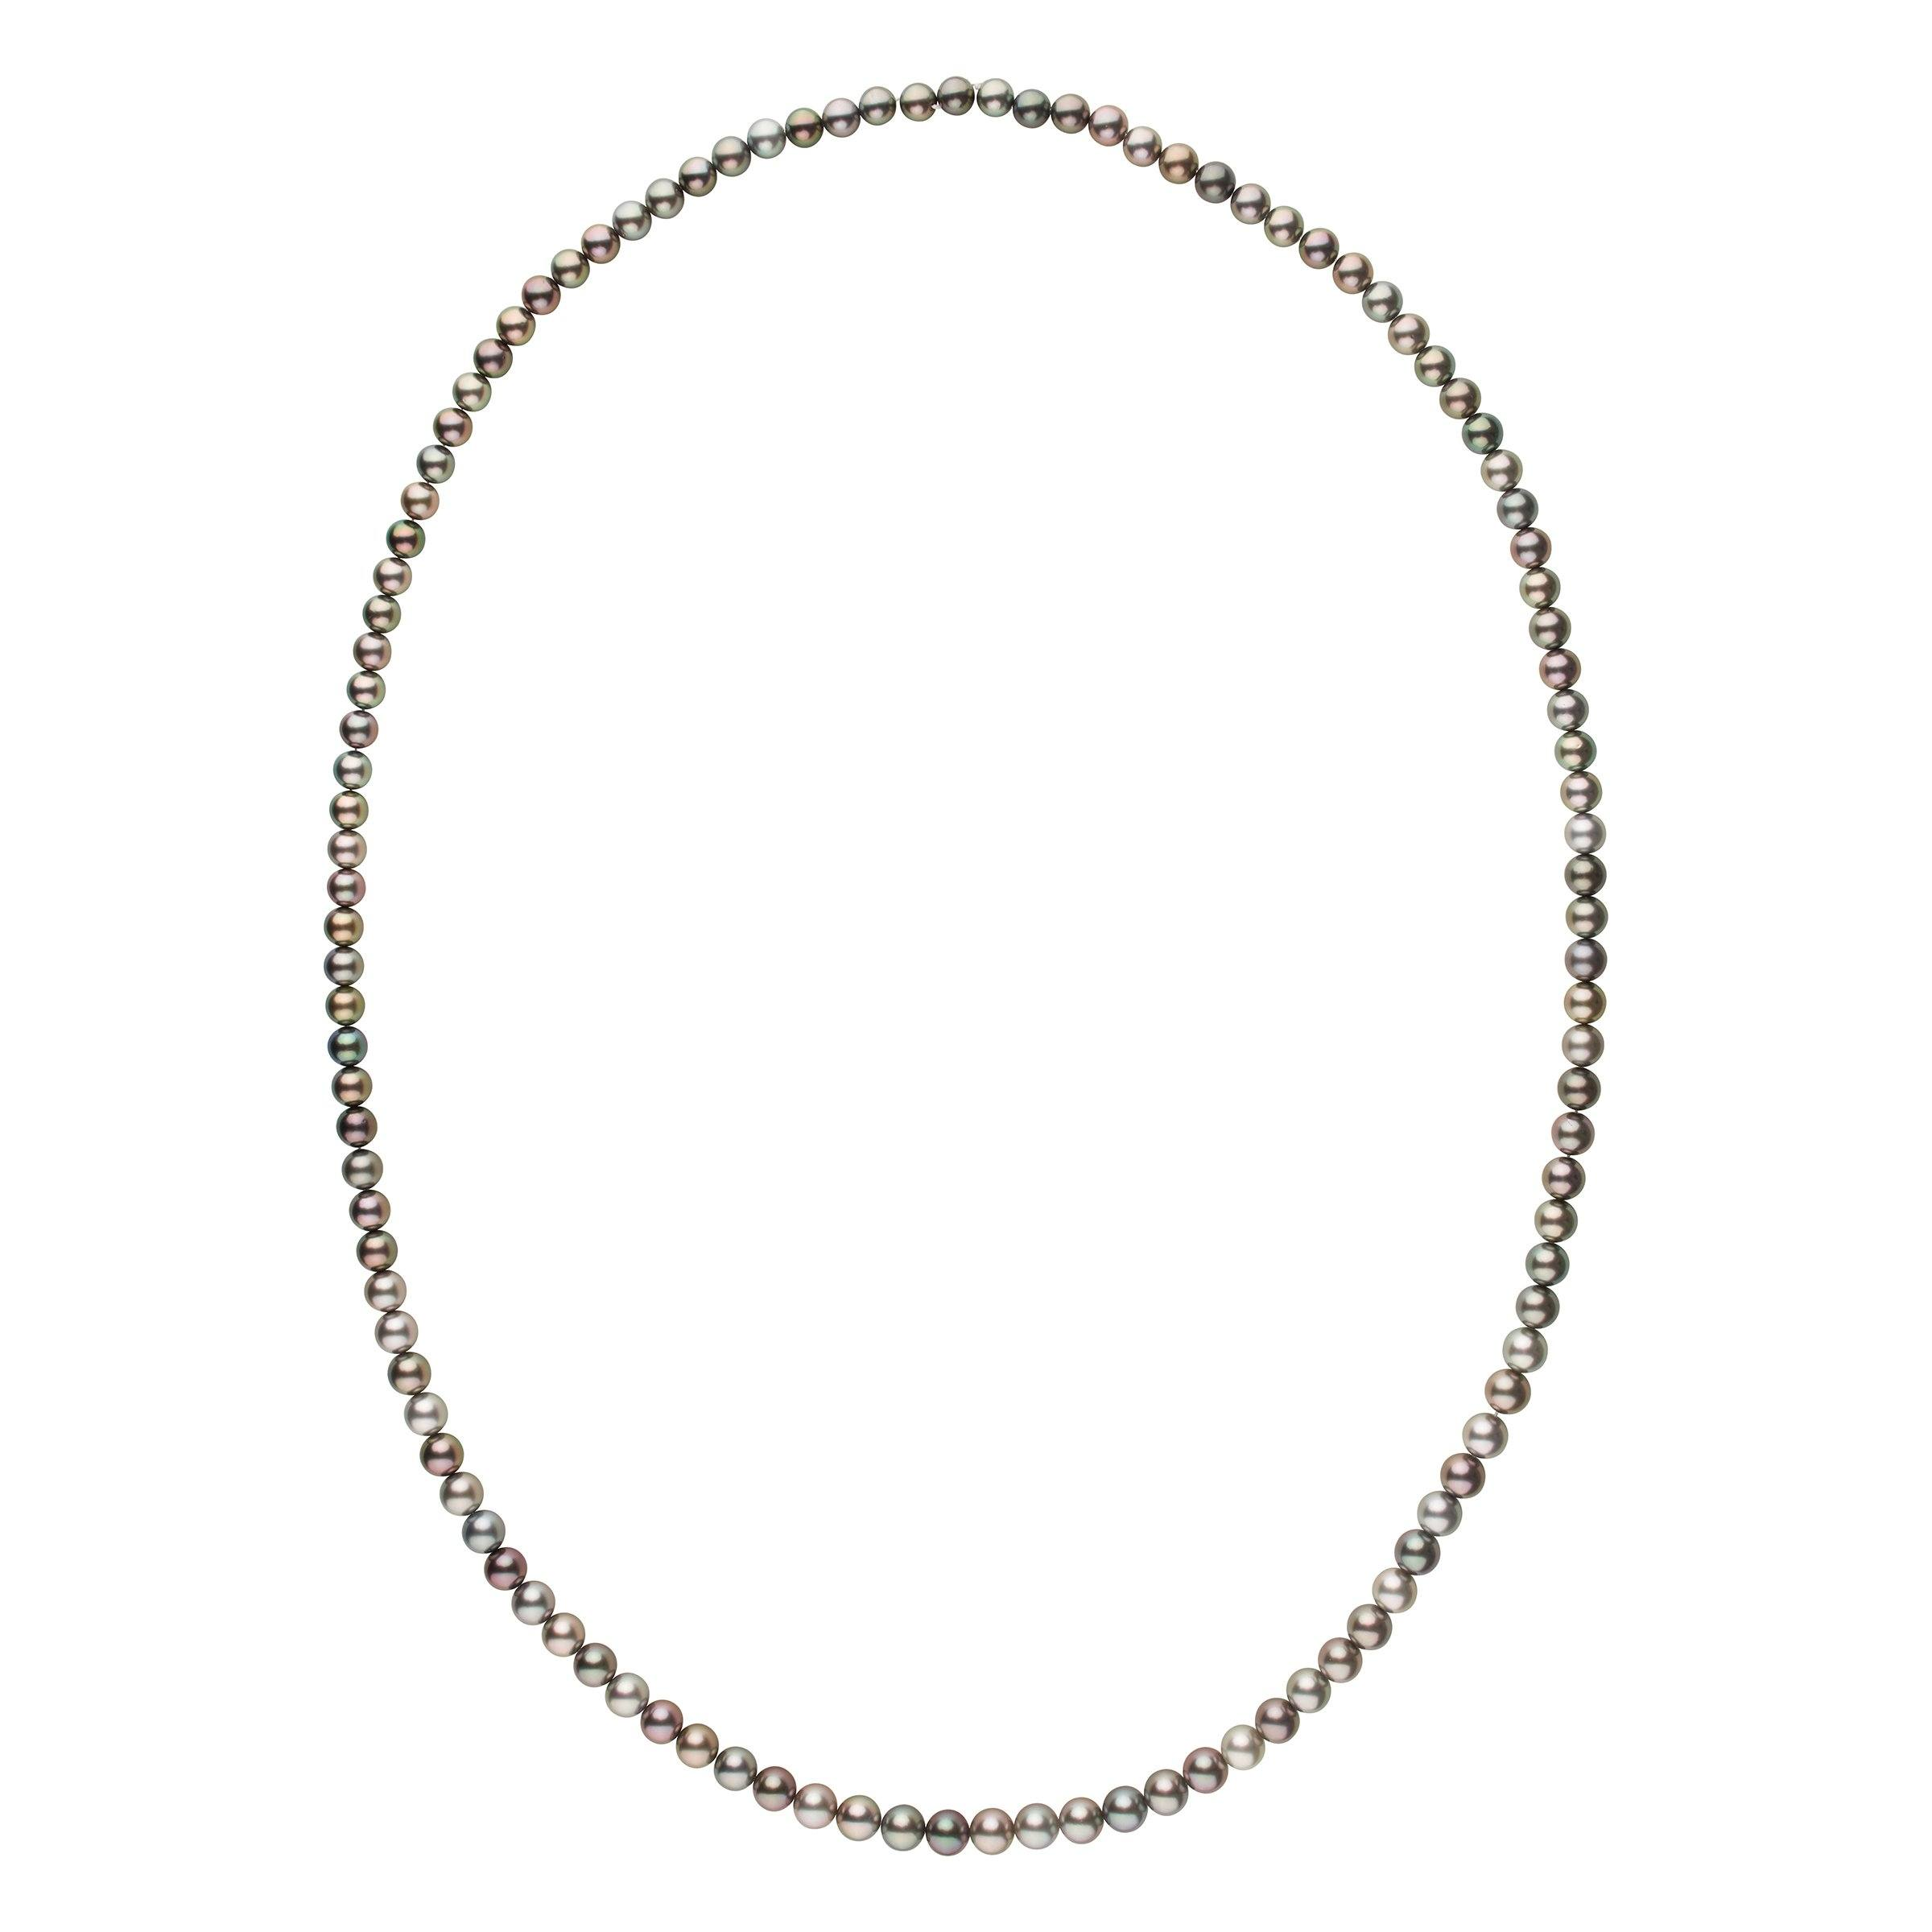 9.0-11.1 mm AAA Tahitian Round Pearl Necklace - 49 Inches